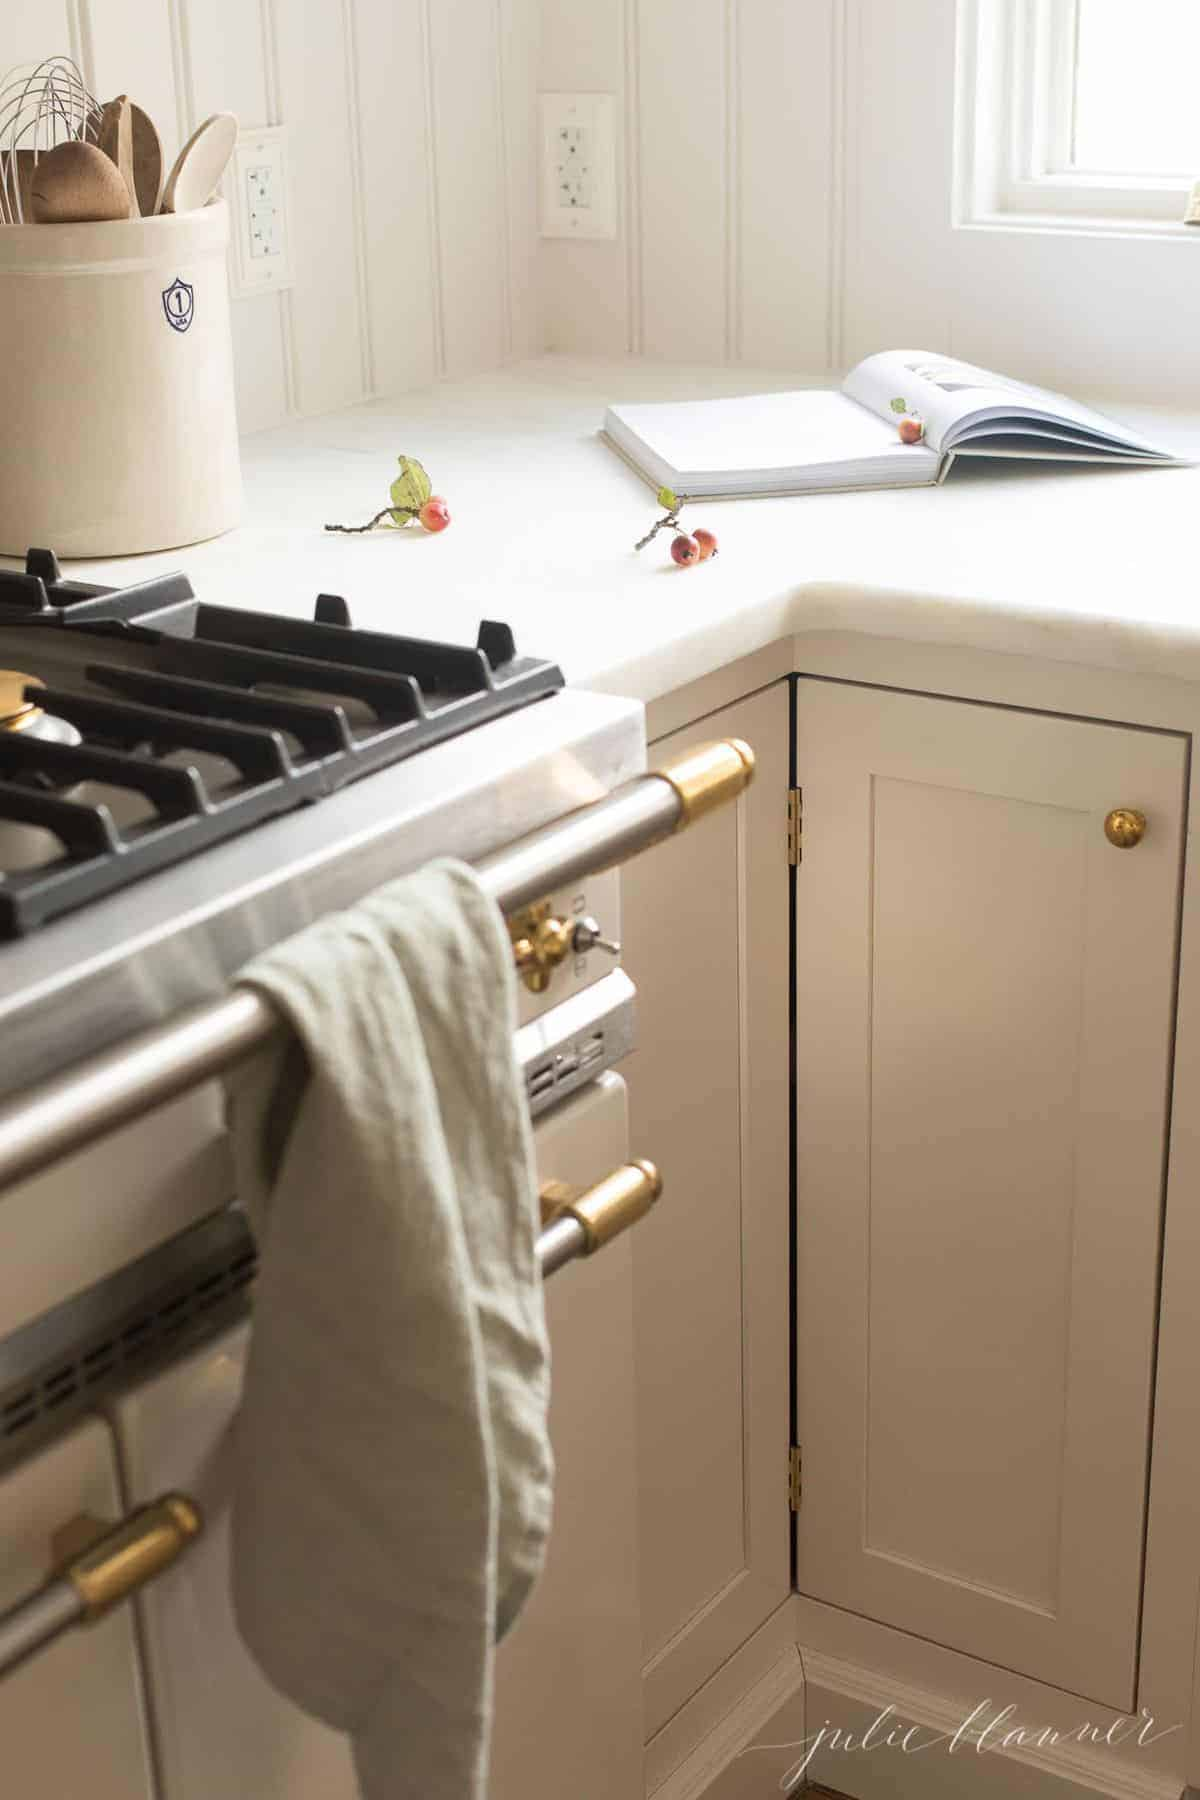 French range with white cabinets, open cookbook.